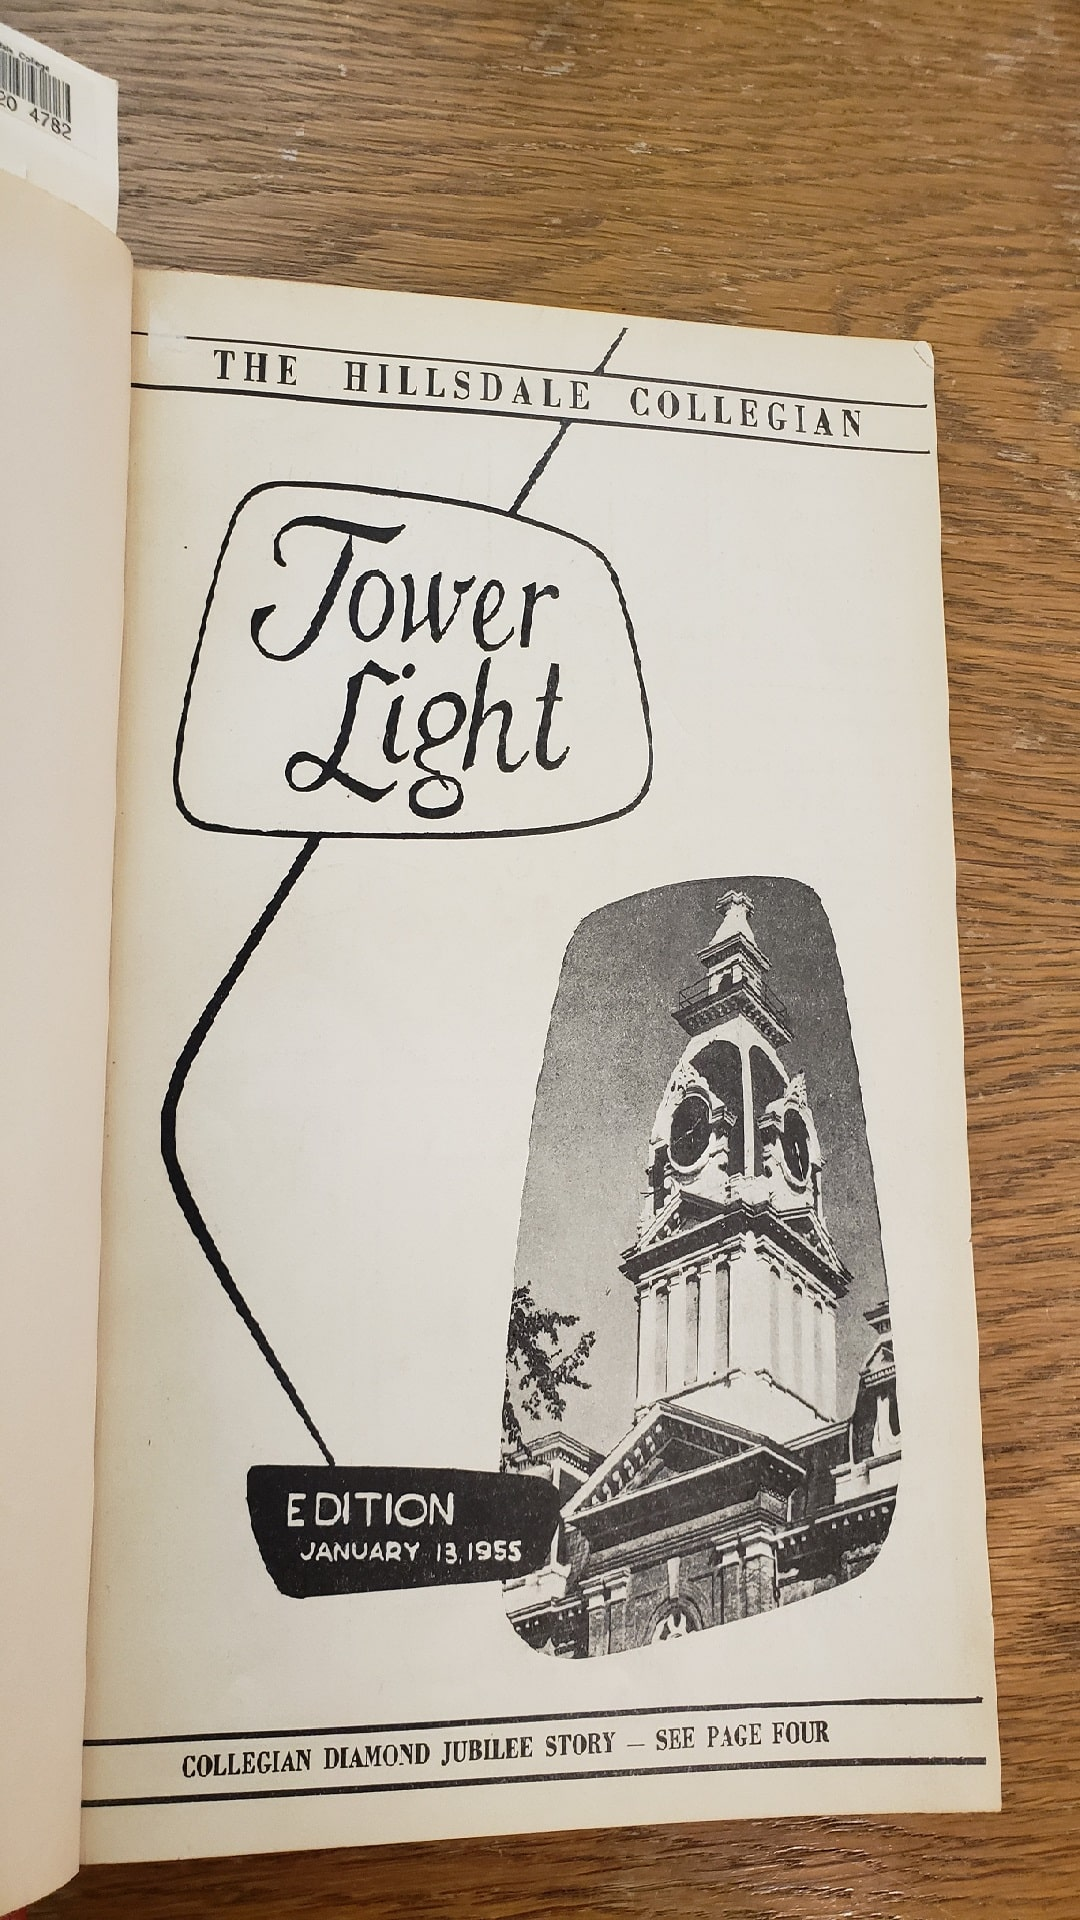 First edition cover of the tower light